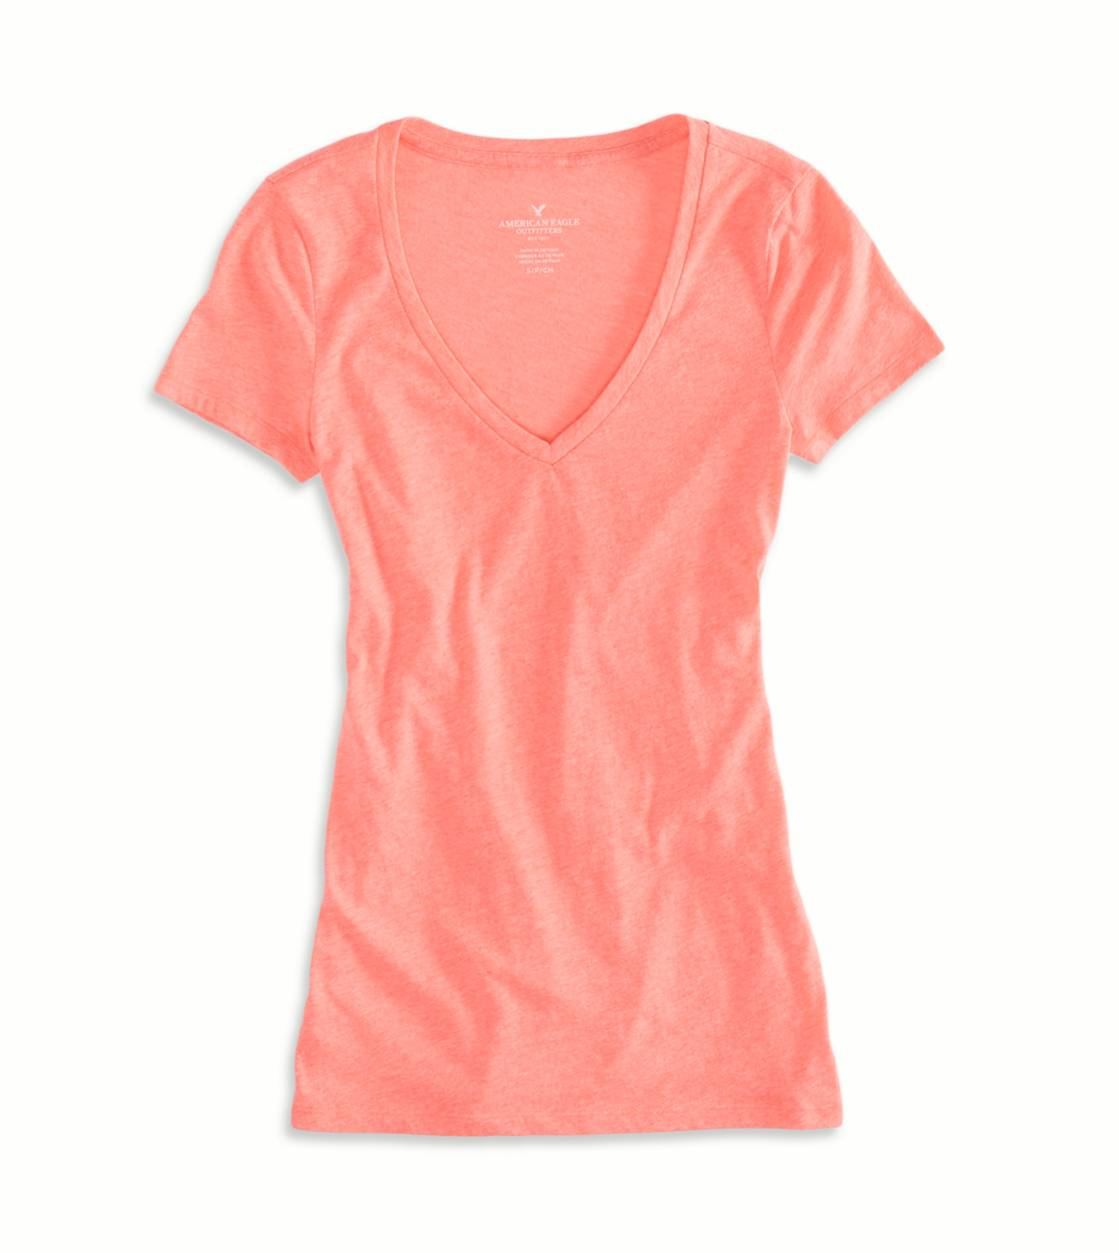 Coral Burst AEO Factory V-Neck Favorite T-Shirt